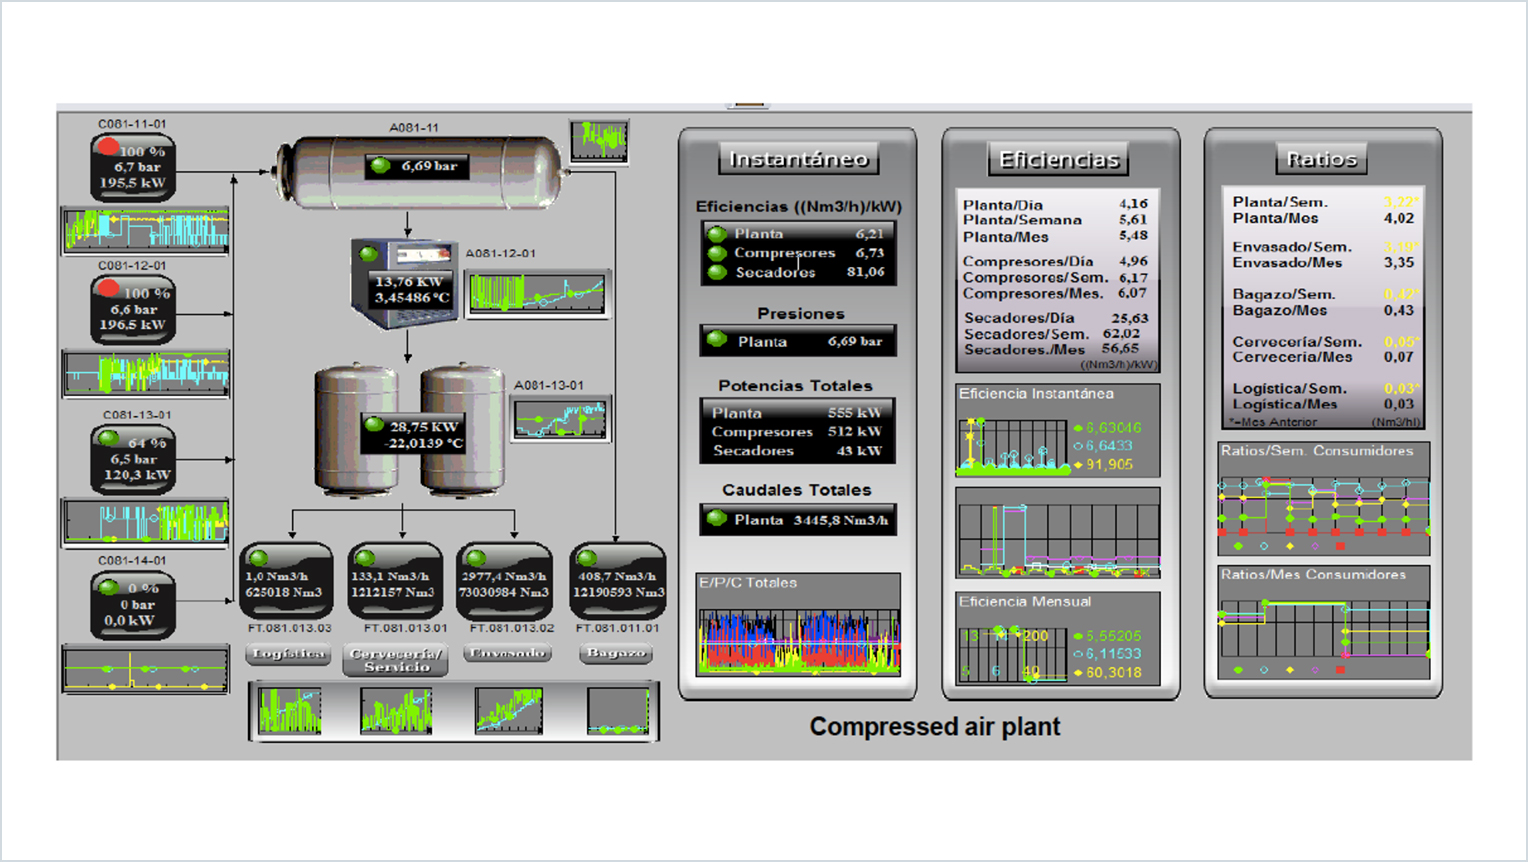 Diagram of PI ProcessBook used to monitor Heineken España's brewery plant operations.